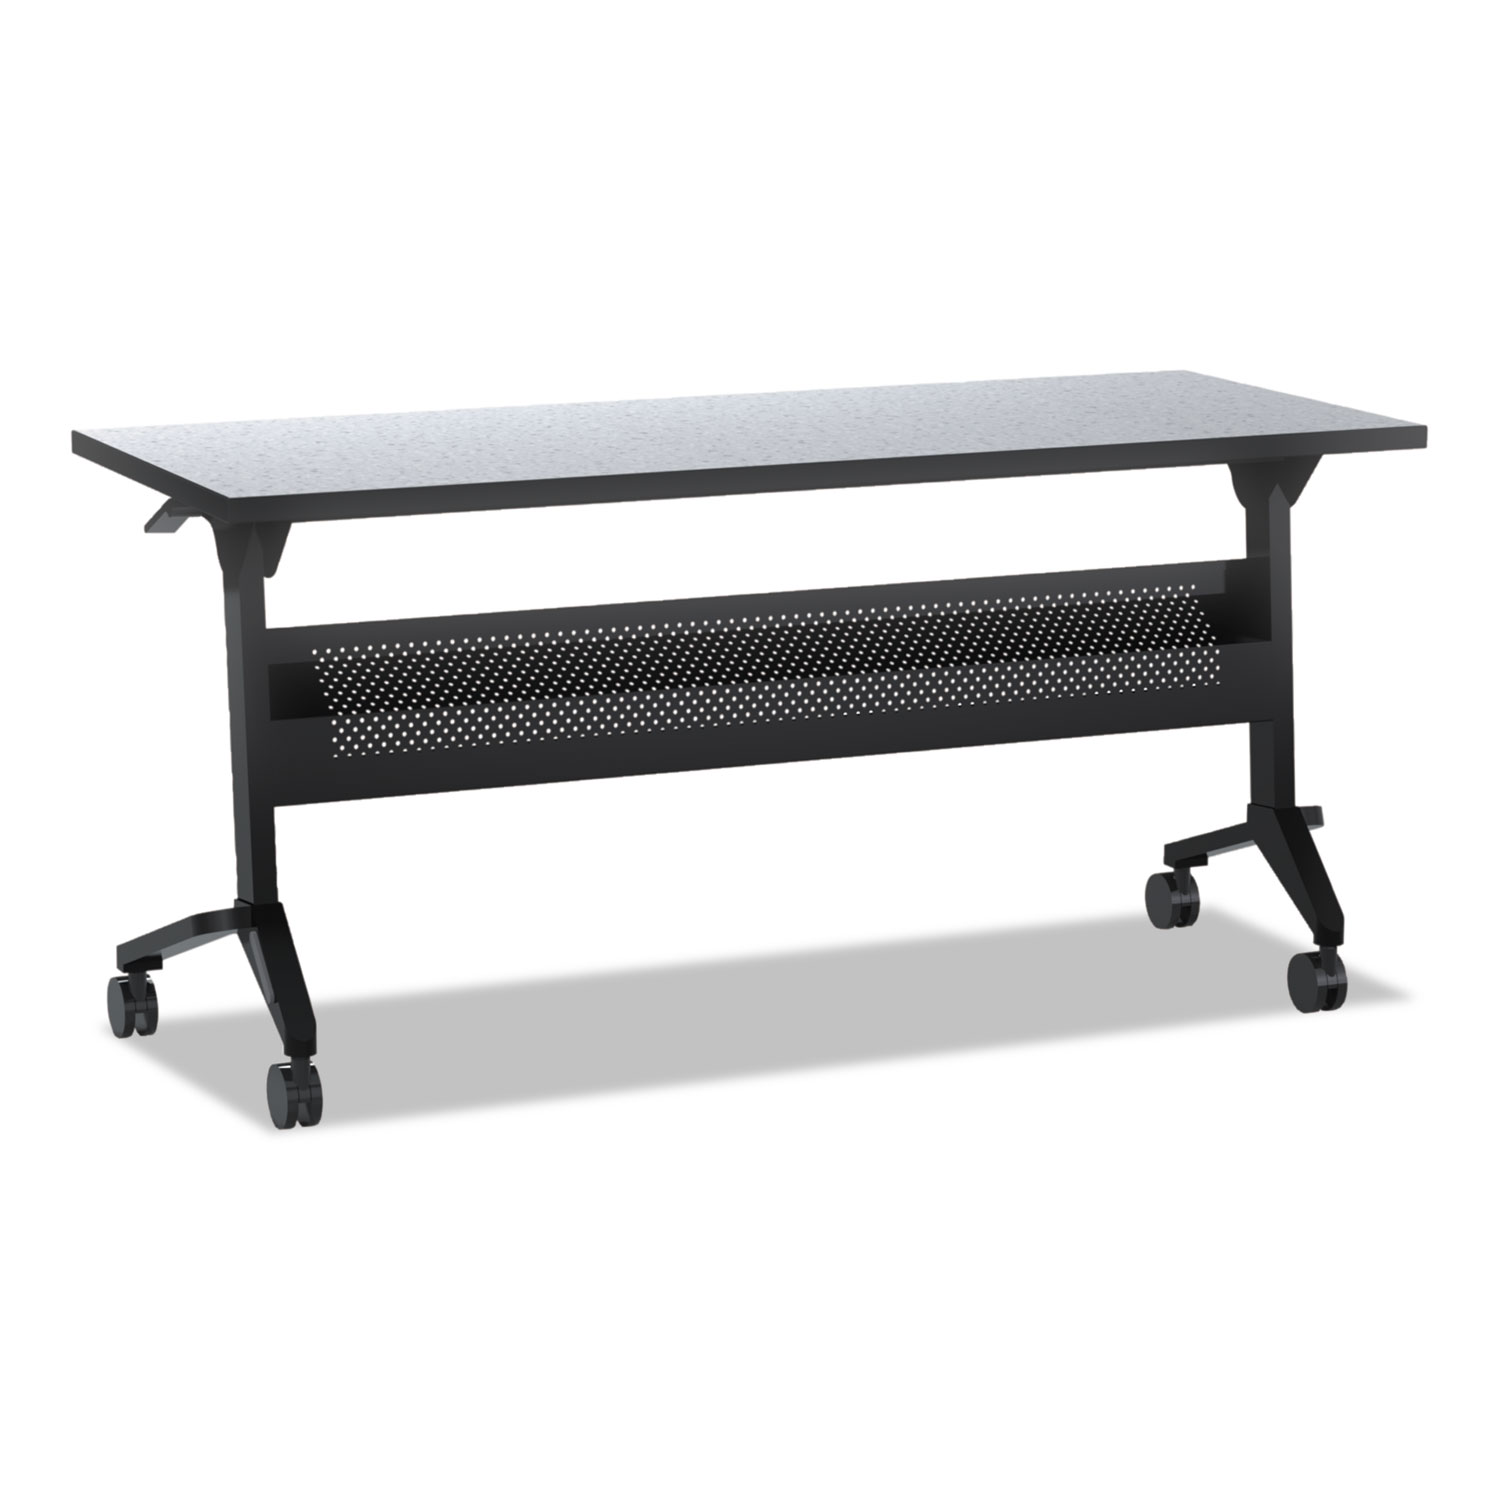 Flip-n-Go Table Top, 48w x 18d, Folkstone